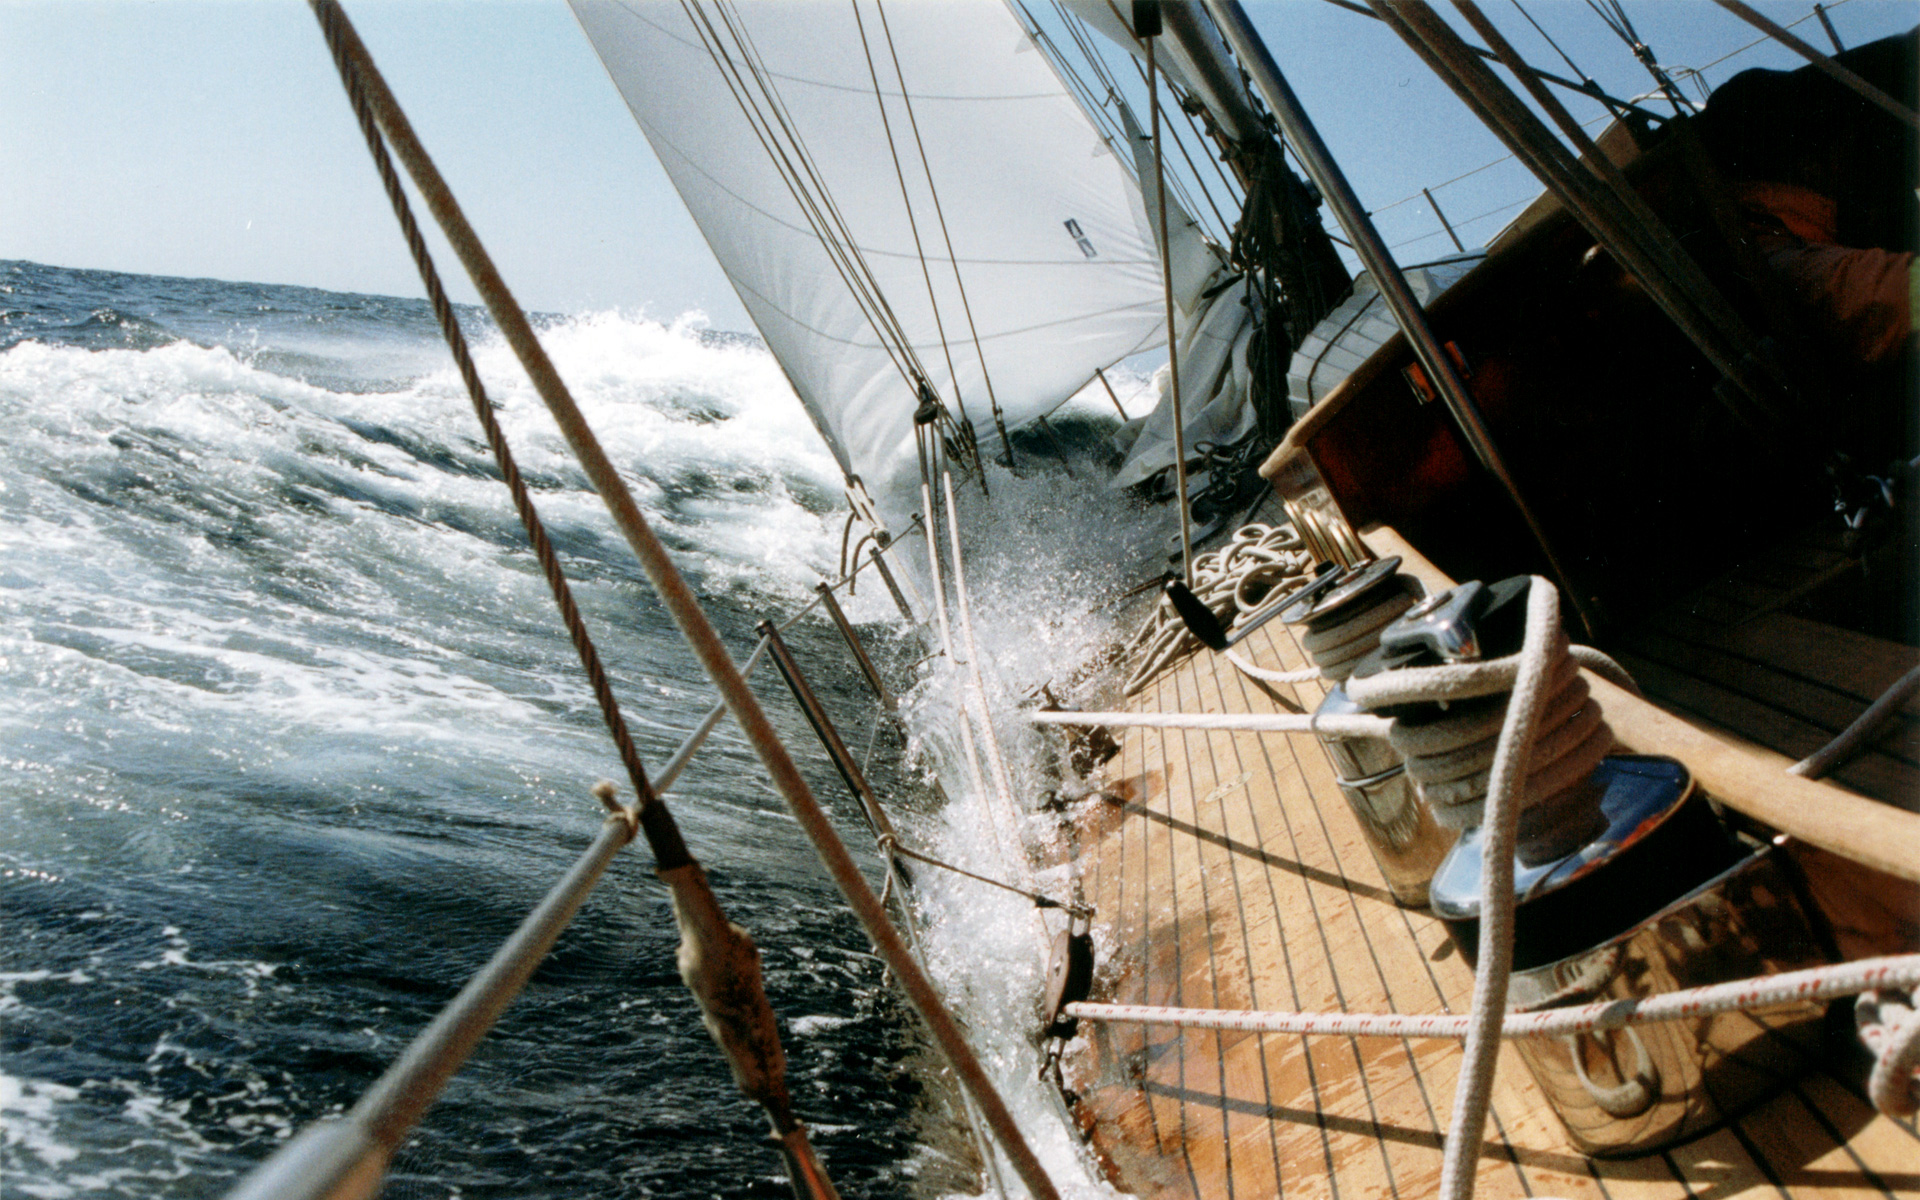 hungry for sailboat wallpaper - photo #30